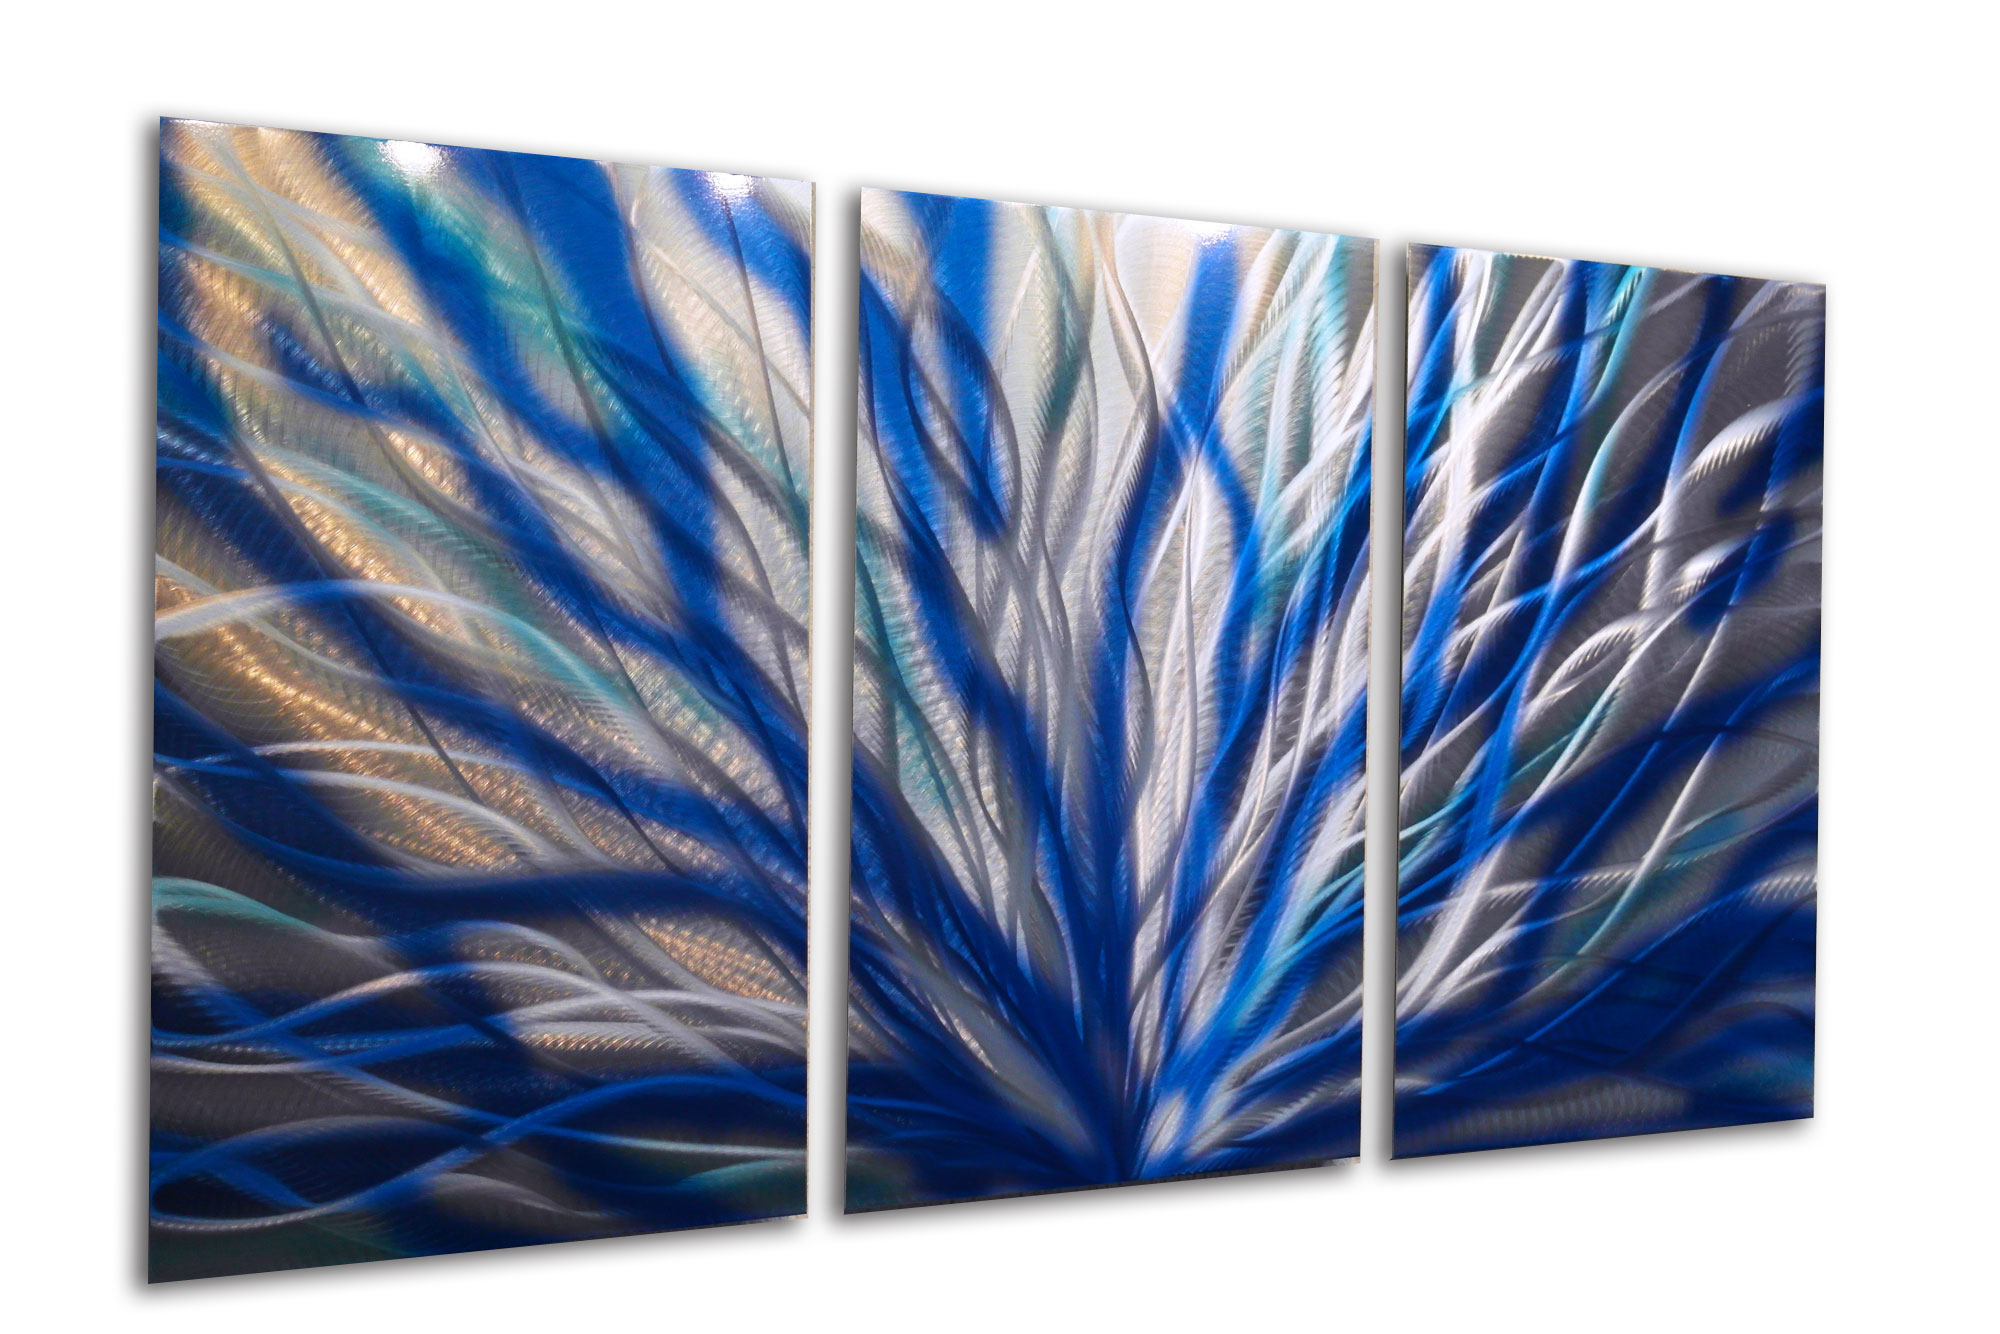 Blue Metal Wall Art Extraordinary Radiance Blue 47 V2  Metal Wall Art Abstract Sculpture Modern Review